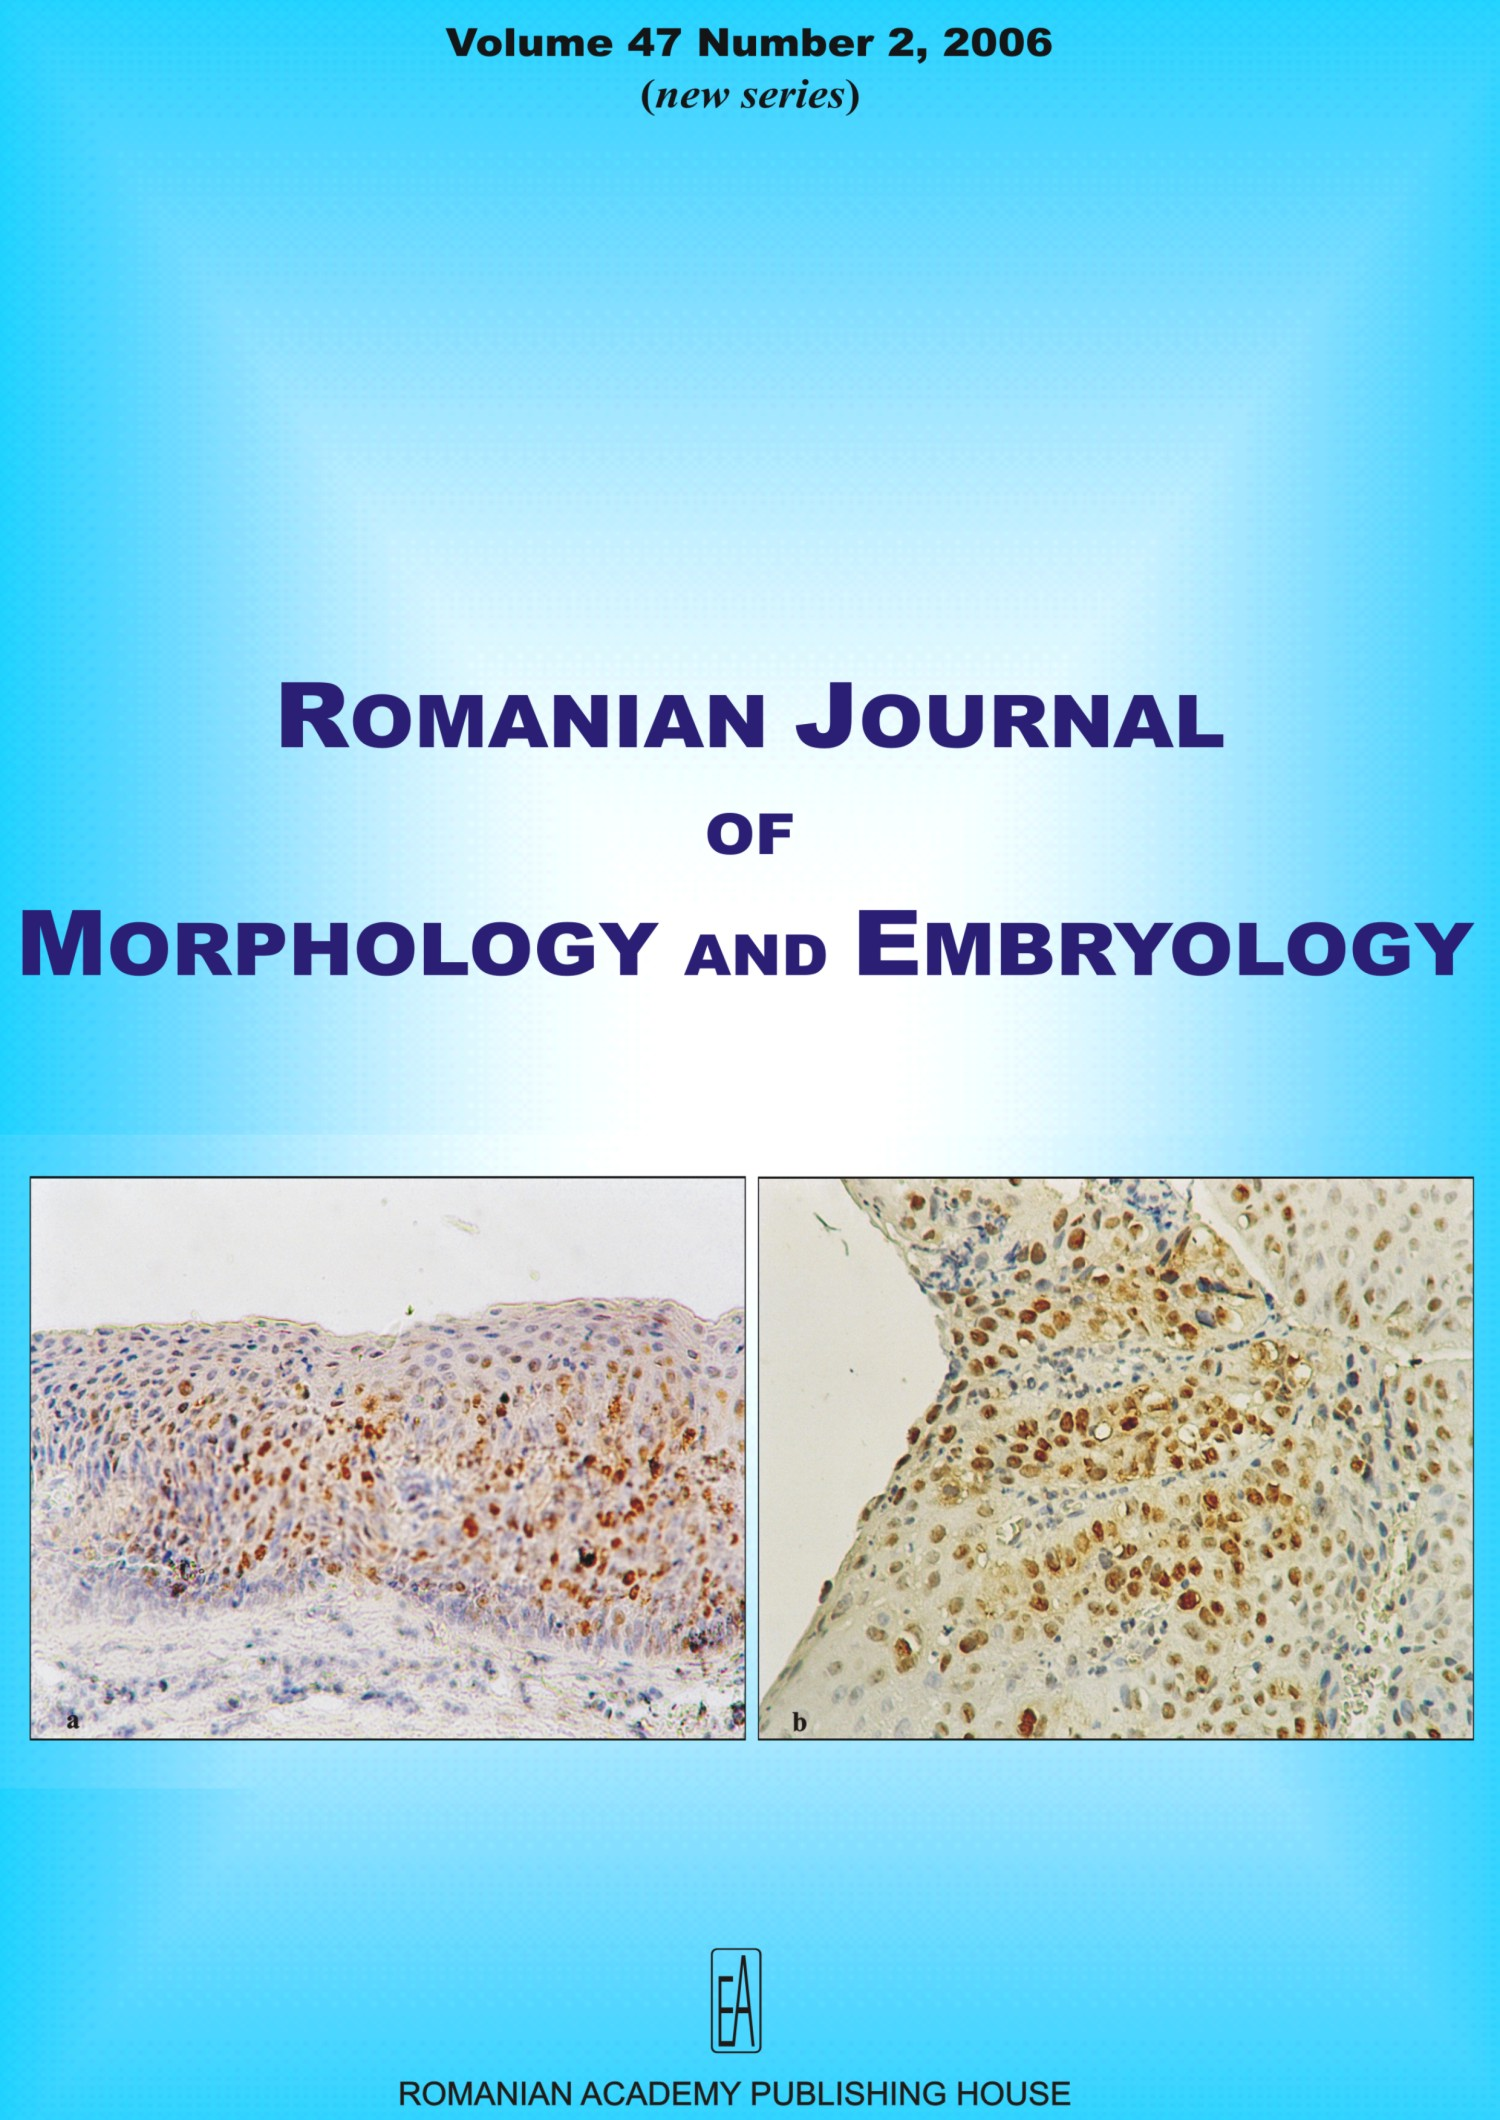 Romanian Journal of Morphology and Embryology, vol. 47 no. 2, 2006